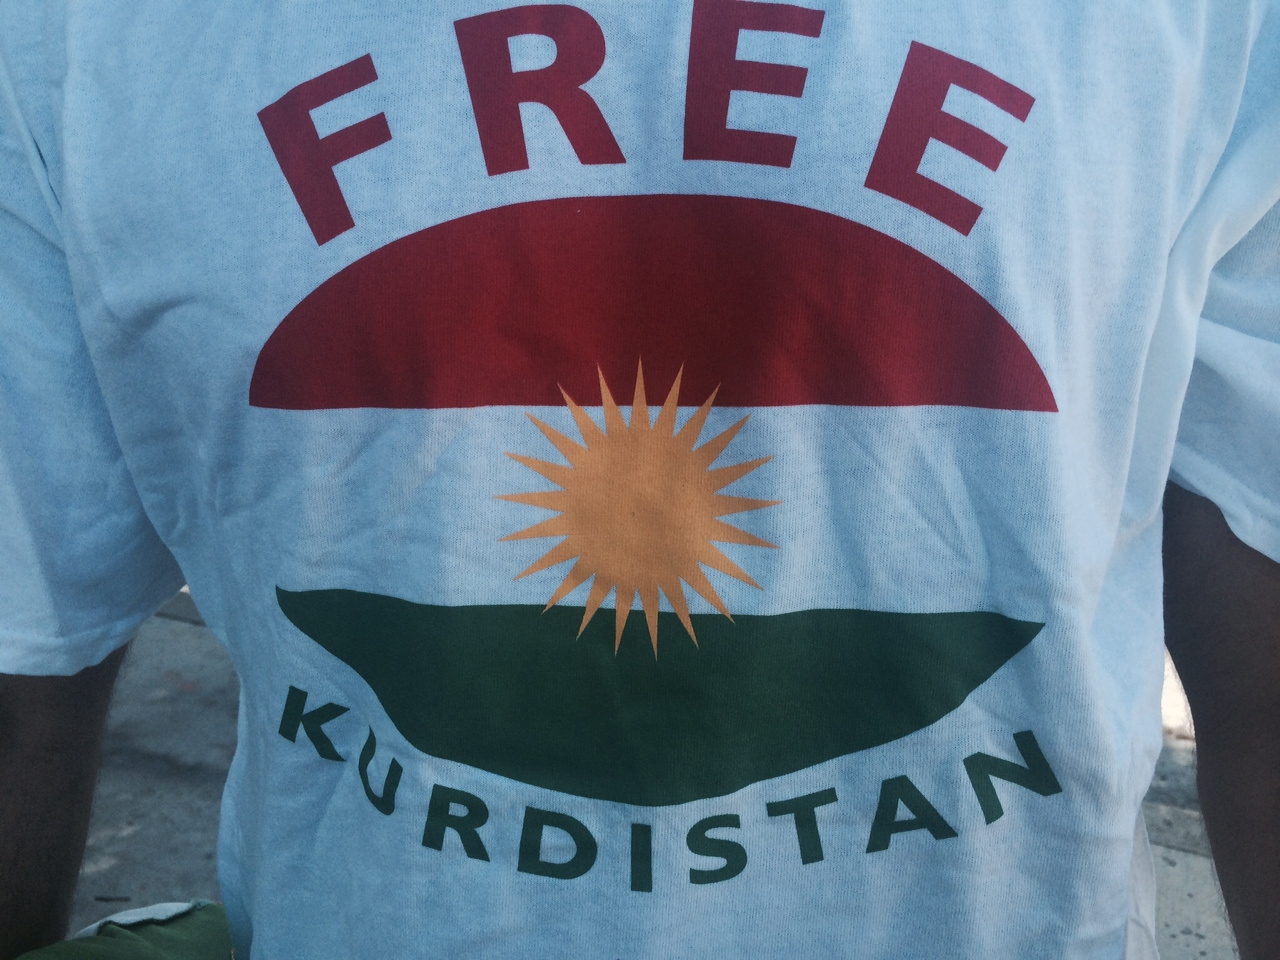 Kurdish-Americans Demonstrate, Plead for U.S. Support for Kurds